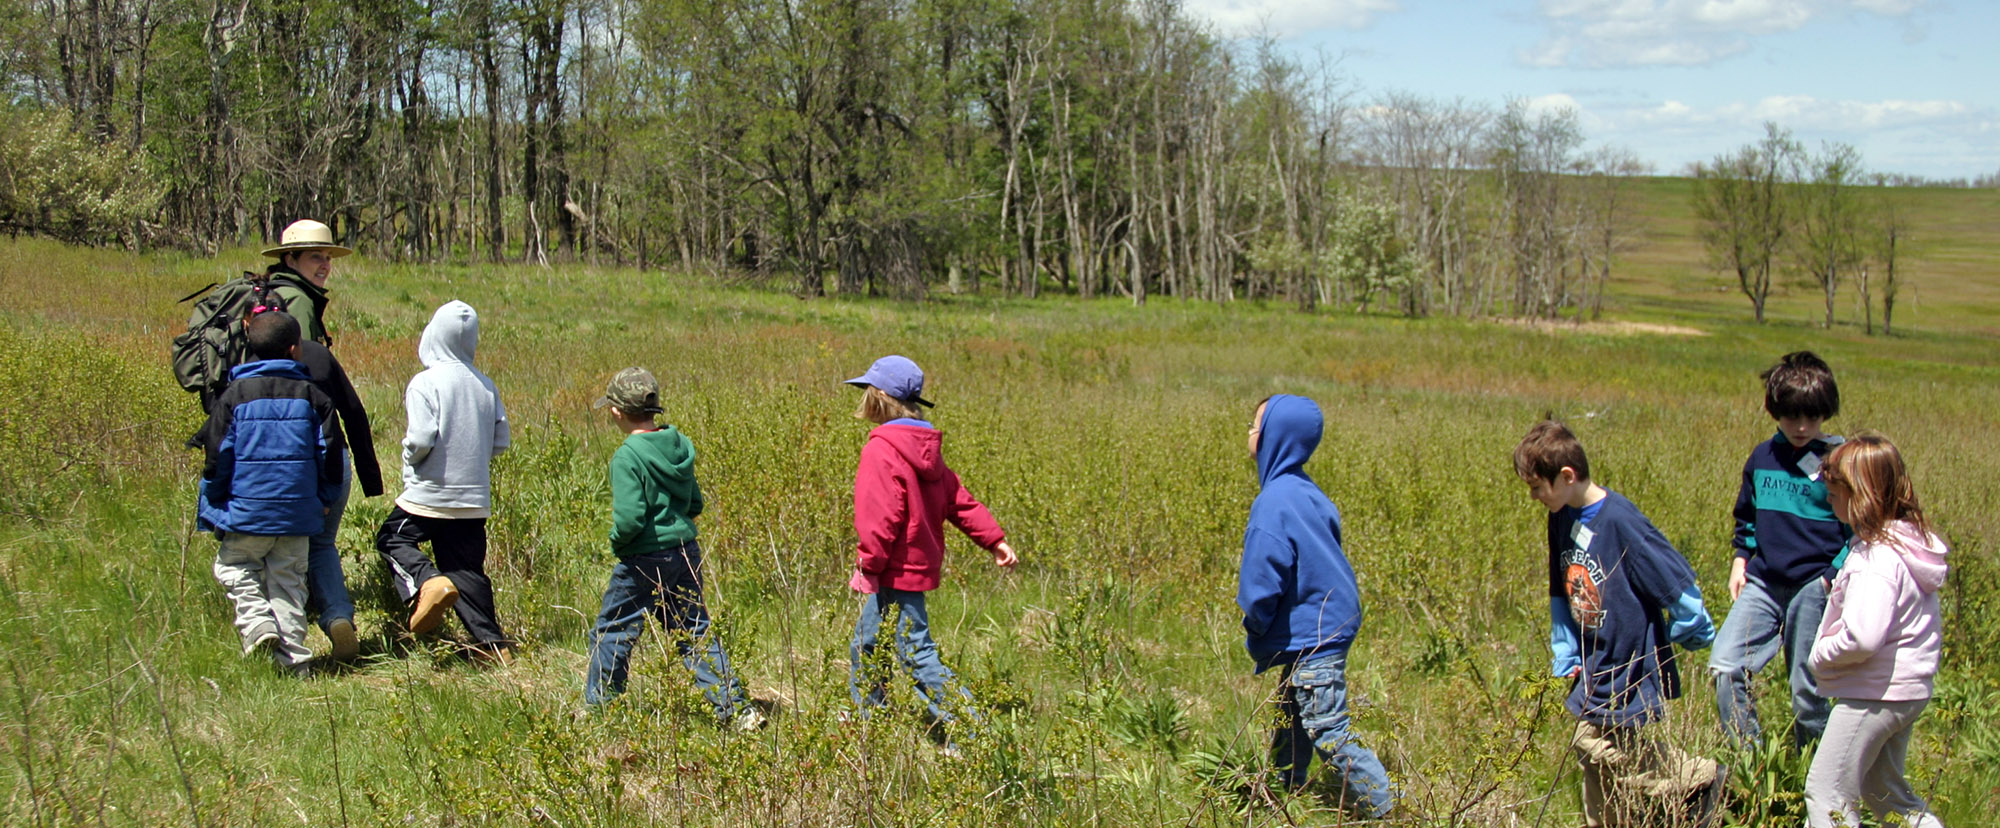 A Ranger leading a group of students through a meadow.